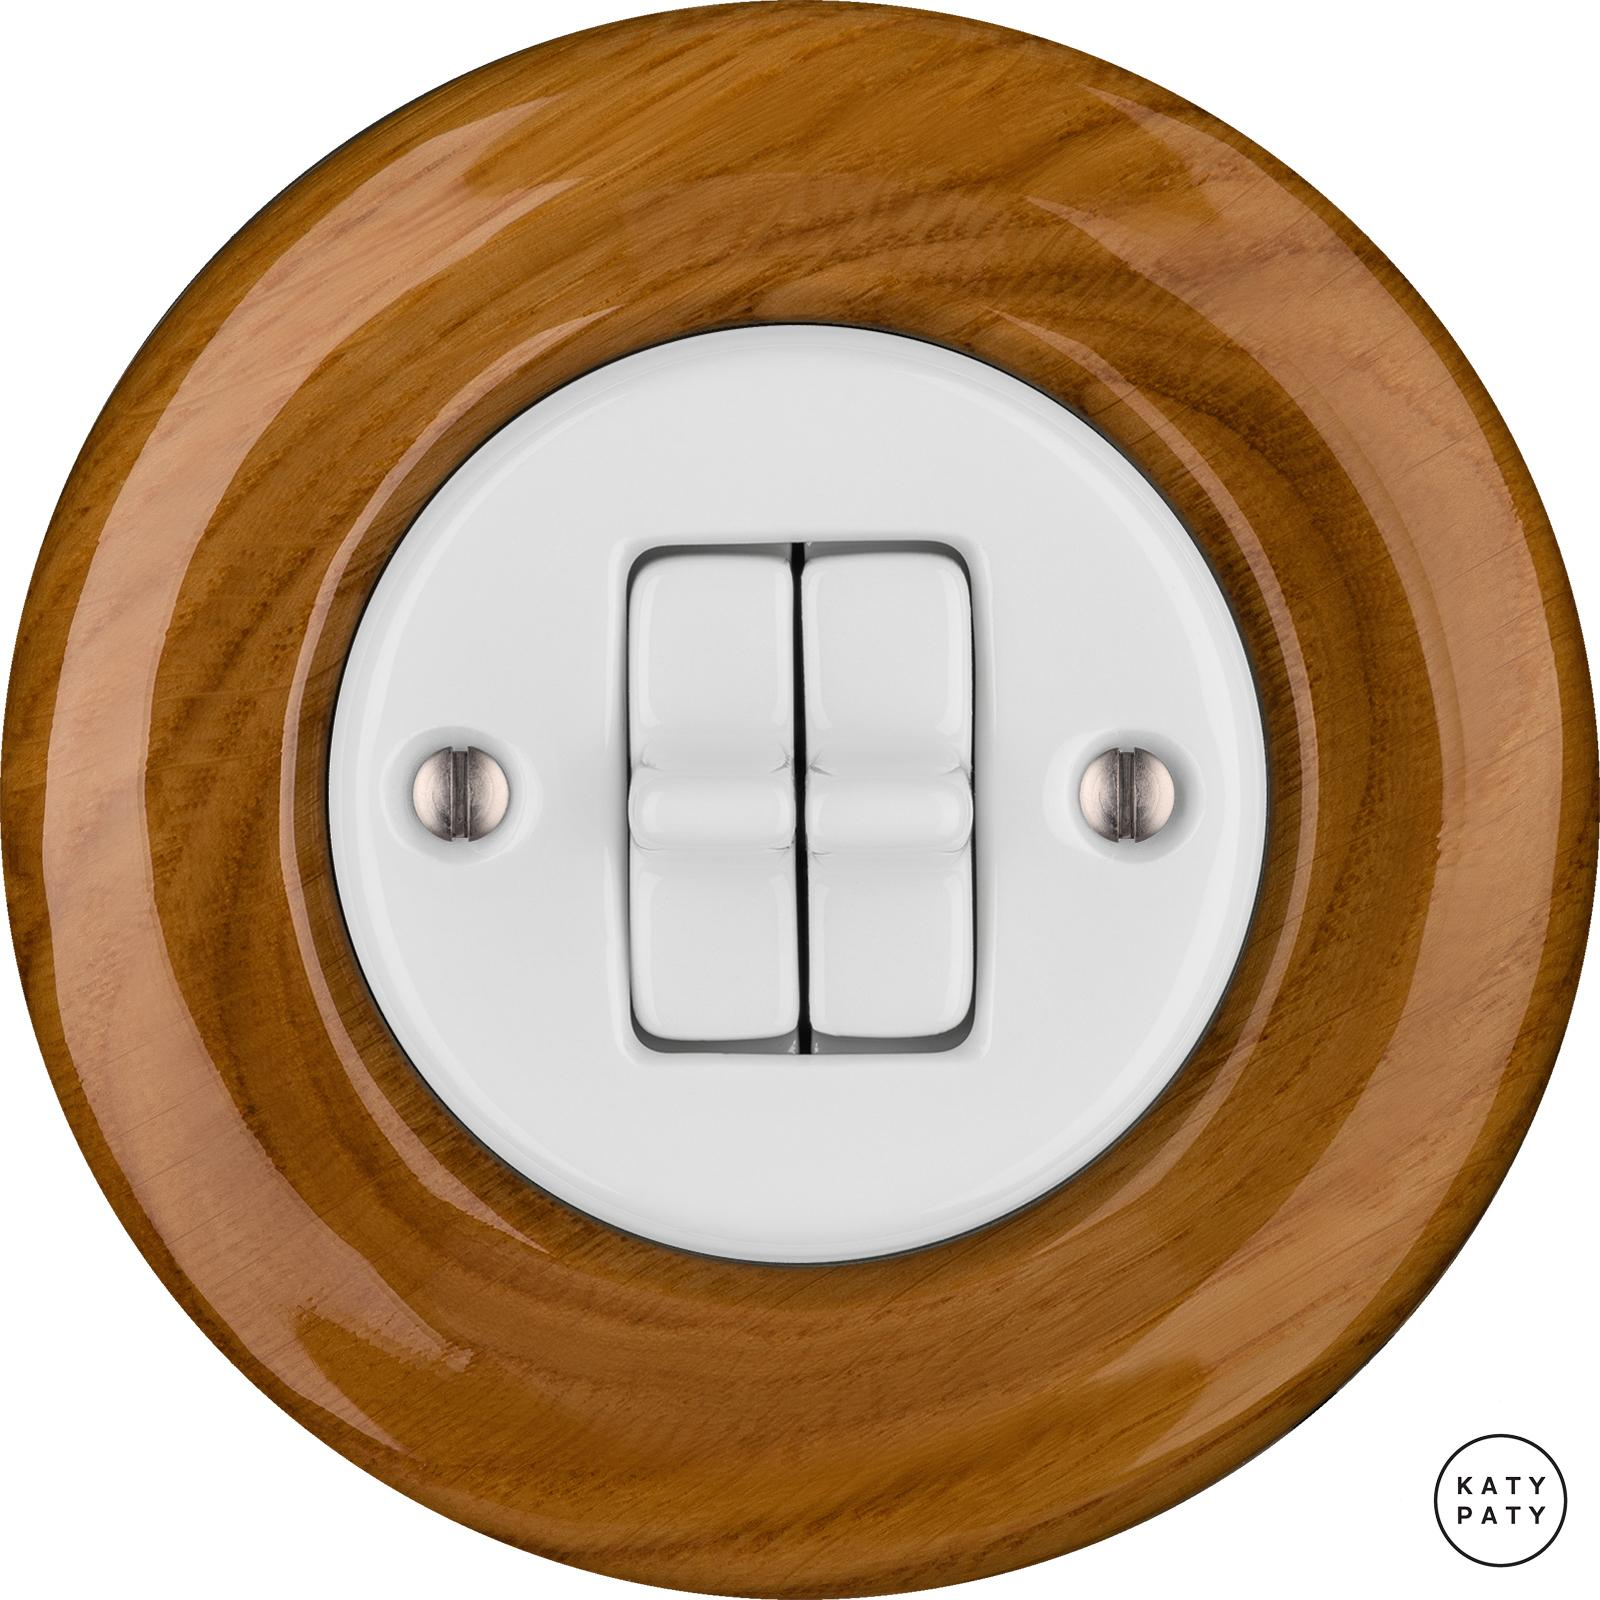 Porcelain toggle switches - a double gang ()  - ROBUS | Katy Paty